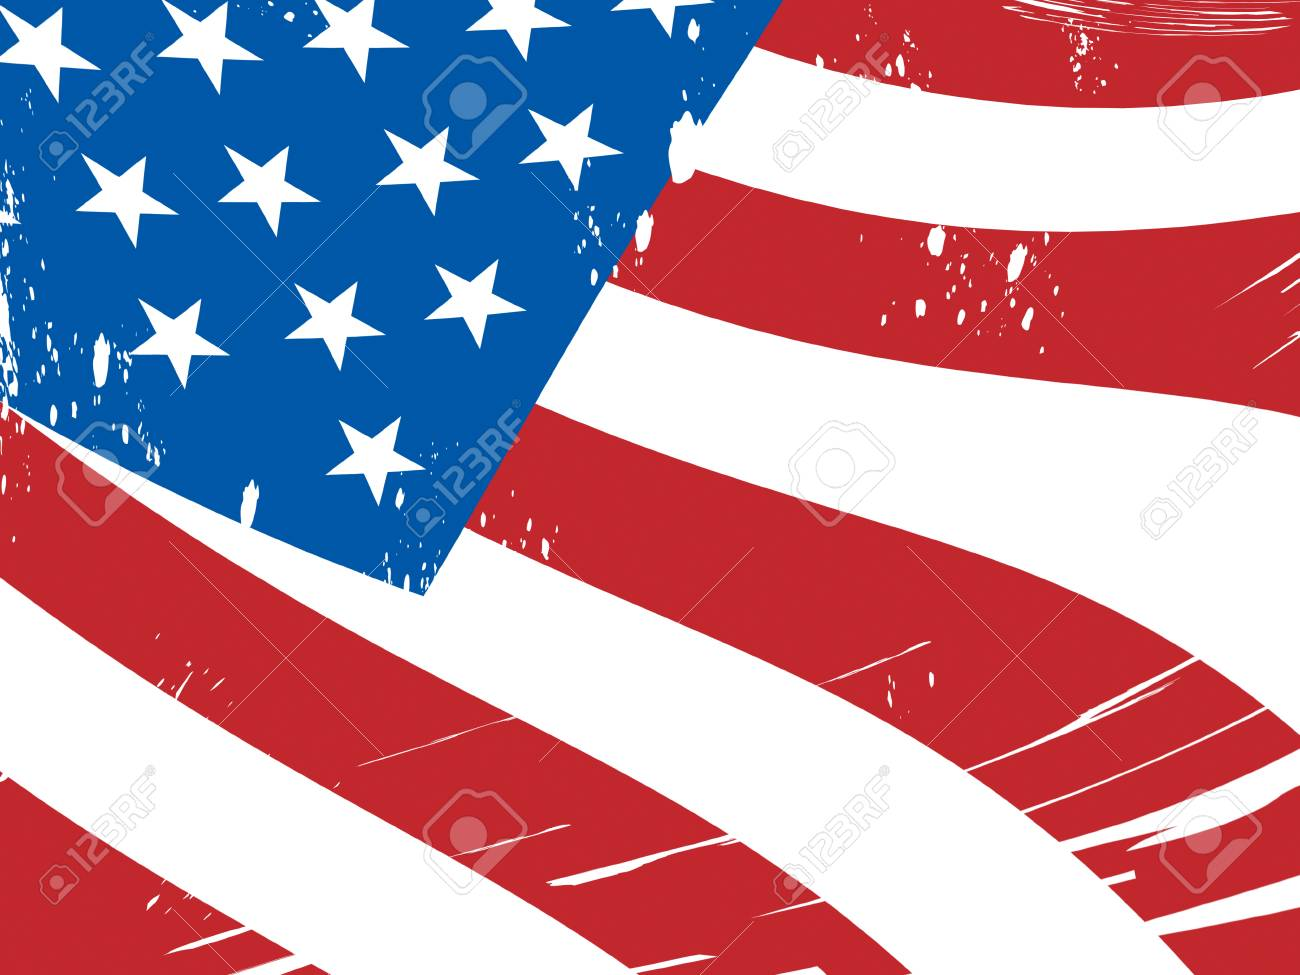 American Flag Background Meaning Freedom Government And Military